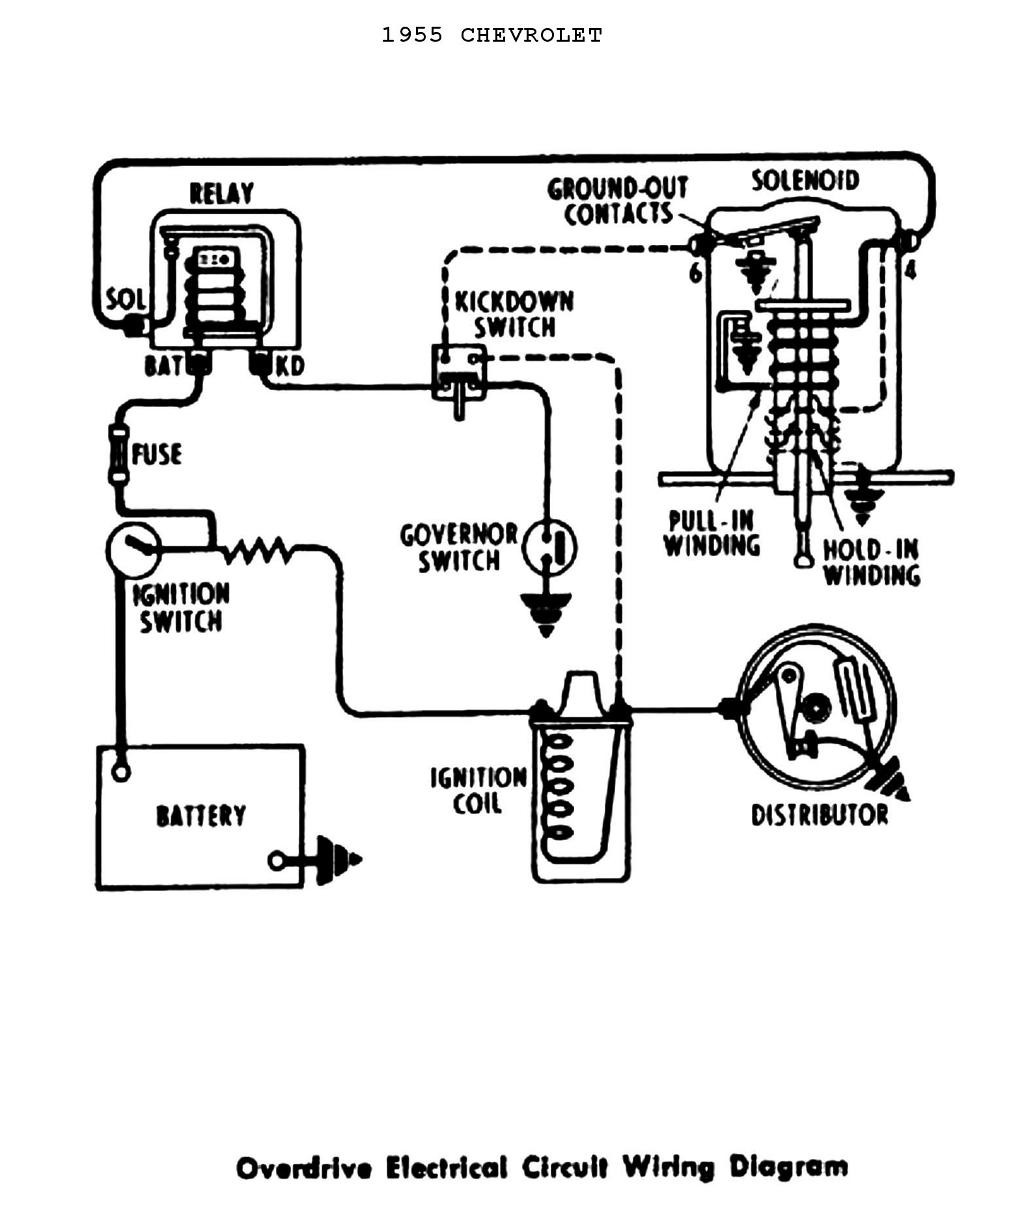 hight resolution of gm ignition wiring diagram wiring diagrams schematics 97 town car ignition wiring diagram 1975 gm coil